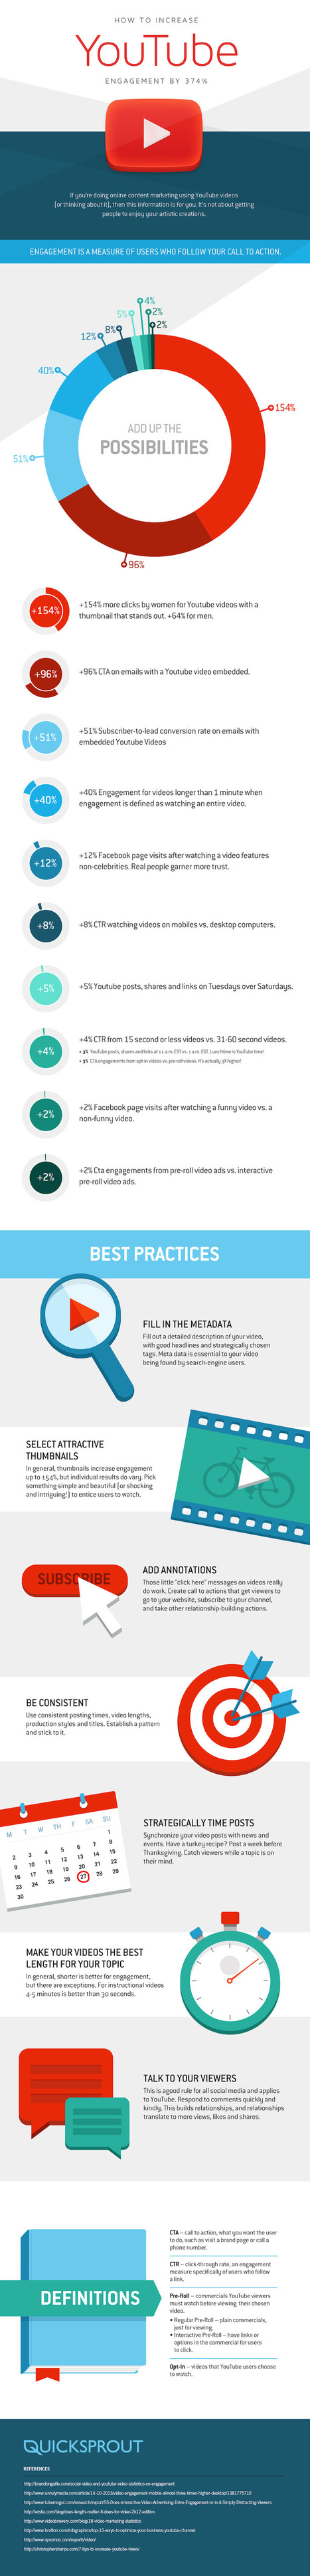 How to Increase Your YouTube Engagement by 374% [Infographic ] | Tecnologie: Soluzioni ICT per il Turismo | Scoop.it